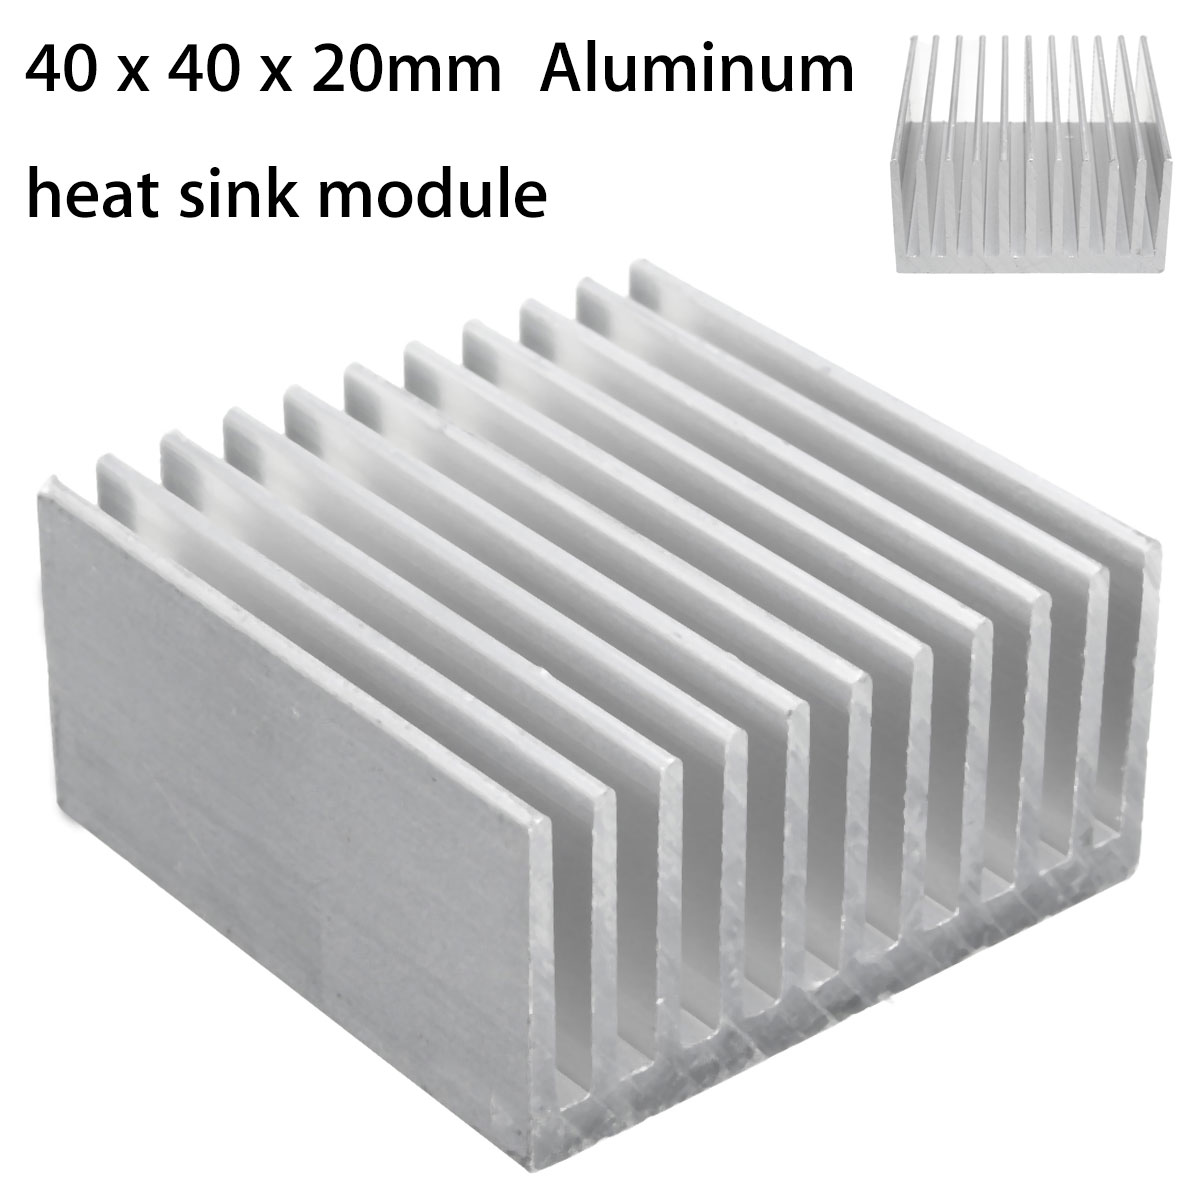 все цены на Leory 40x40x20mm Aluminum Heat Sink Cooler IC Heatsink Cooling Fin Radiator For CPU LED Power Component Cooling Accessories онлайн